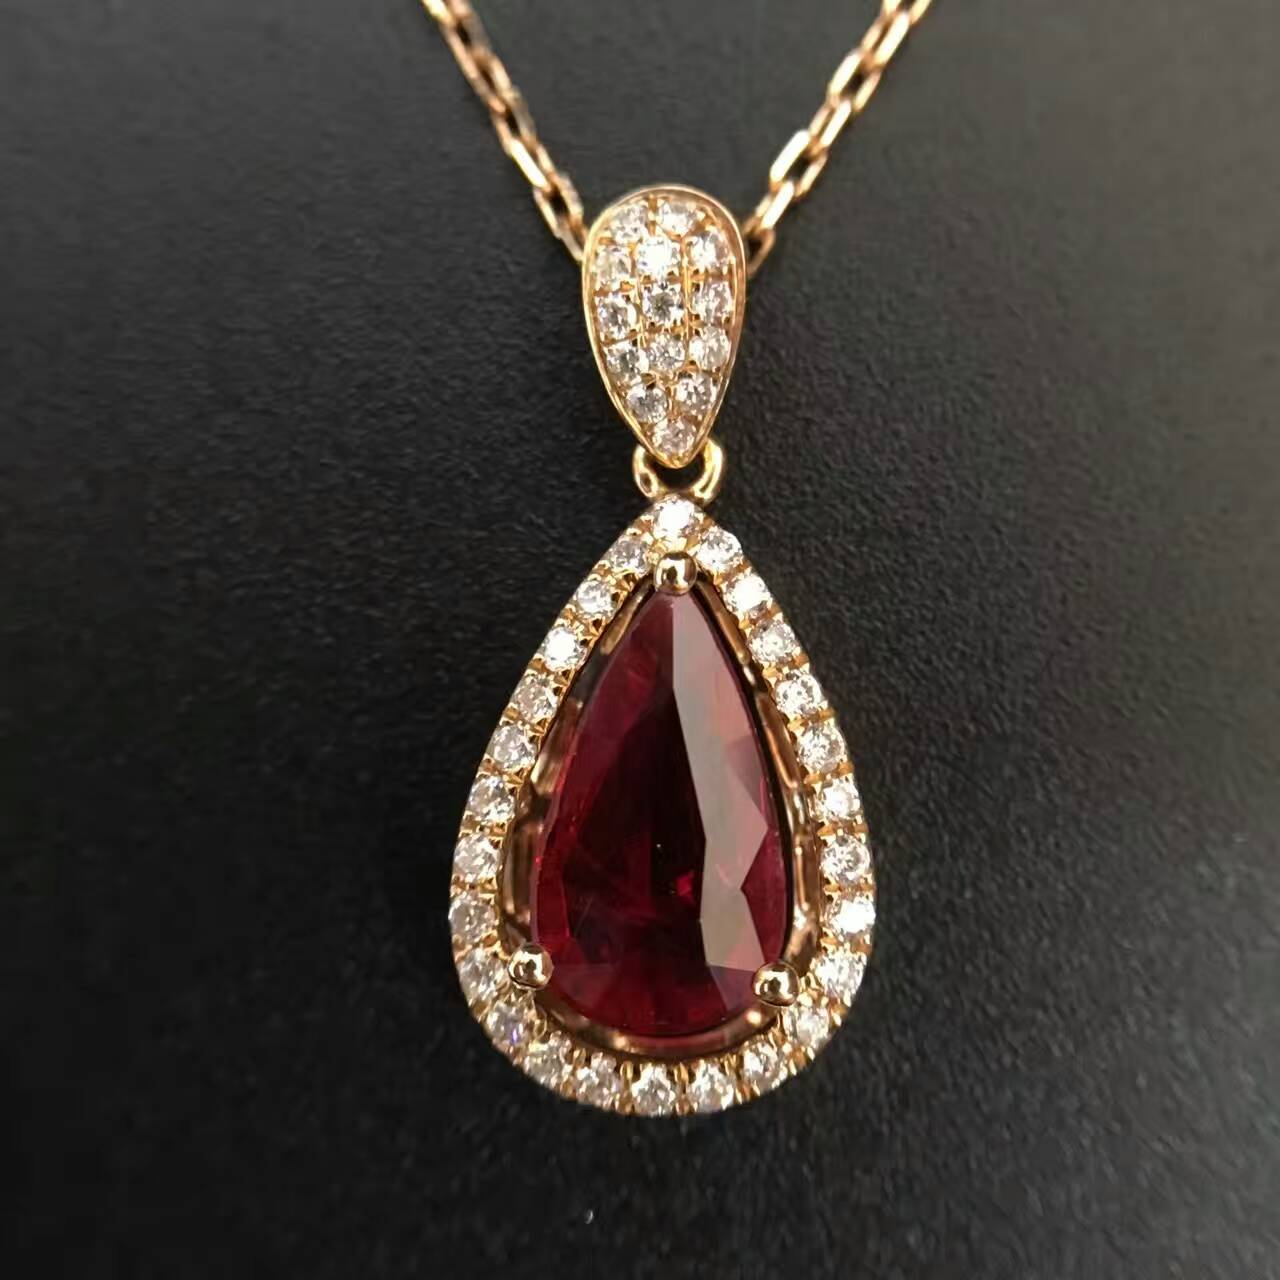 18K Gold 1 301ct Natural Ruby and Pendant font b Necklace b font 0 265ct font